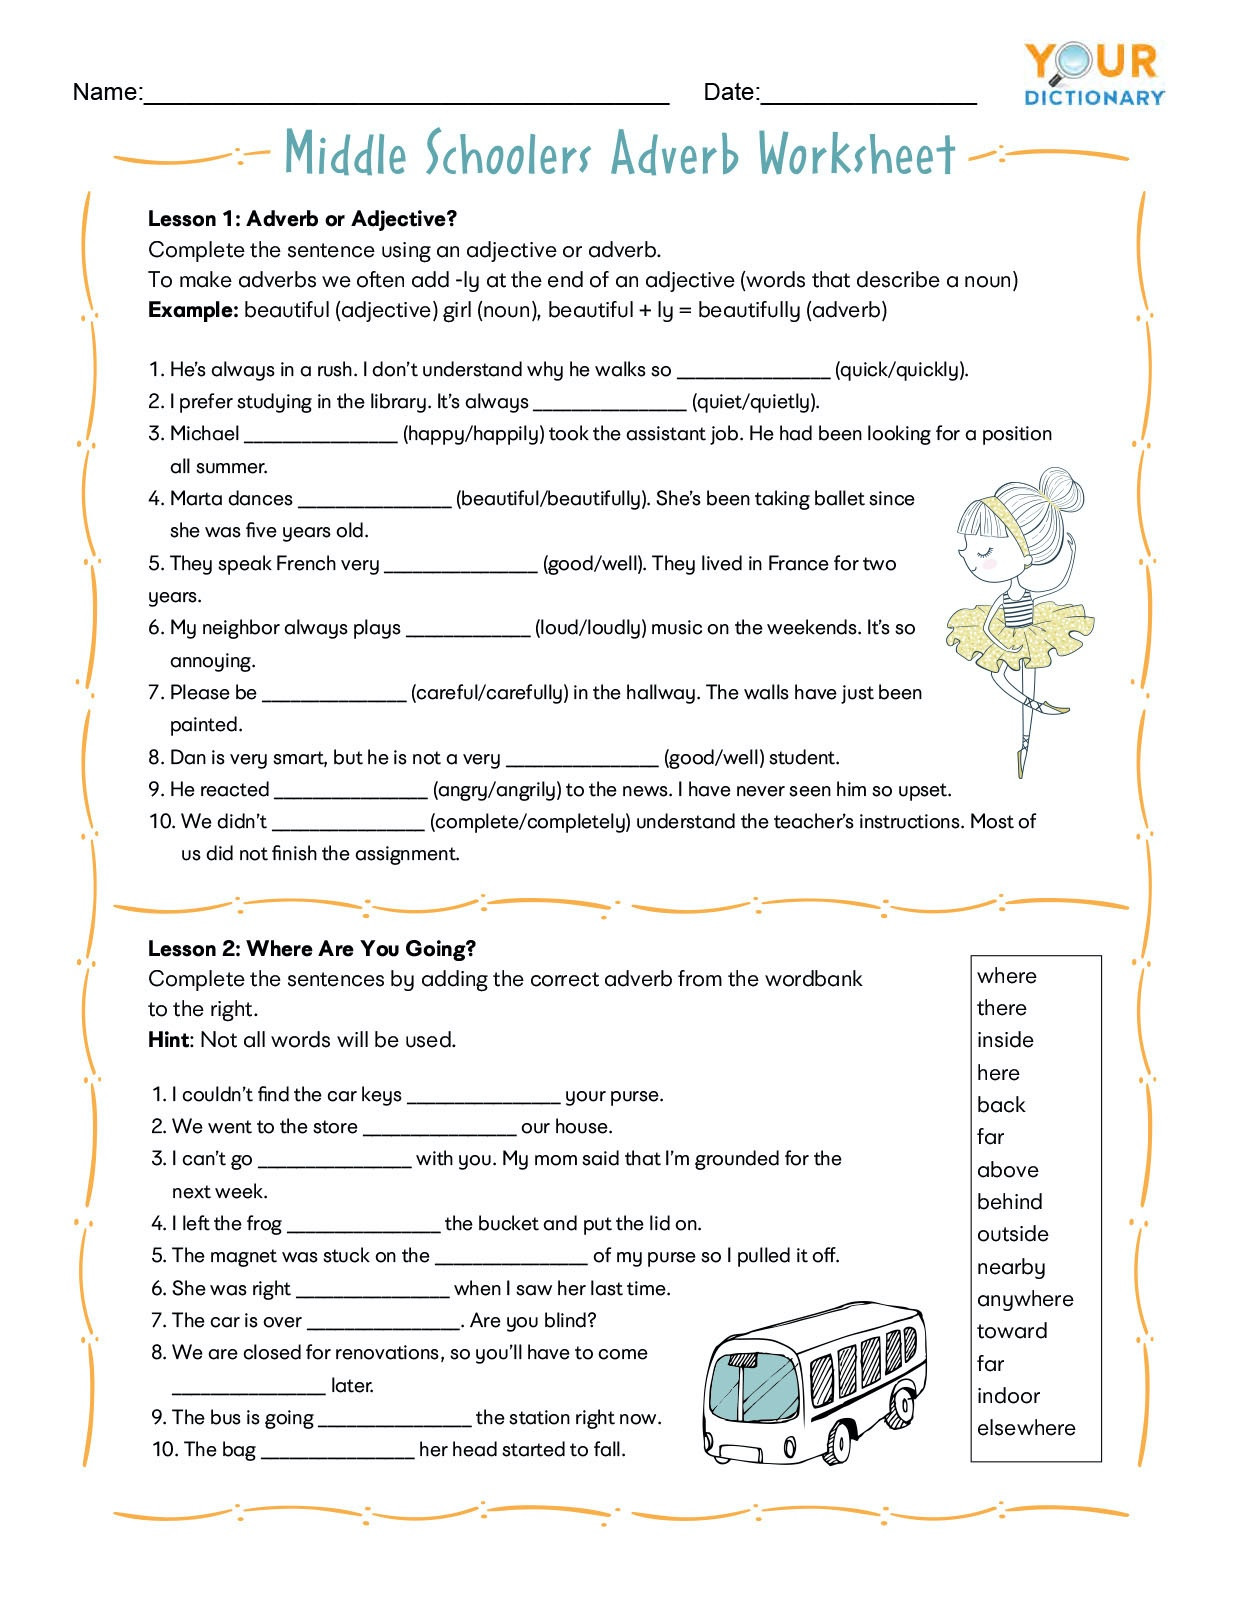 Grammar Worksheet 6th Grade Adverb Worksheets for Elementary and Middle School